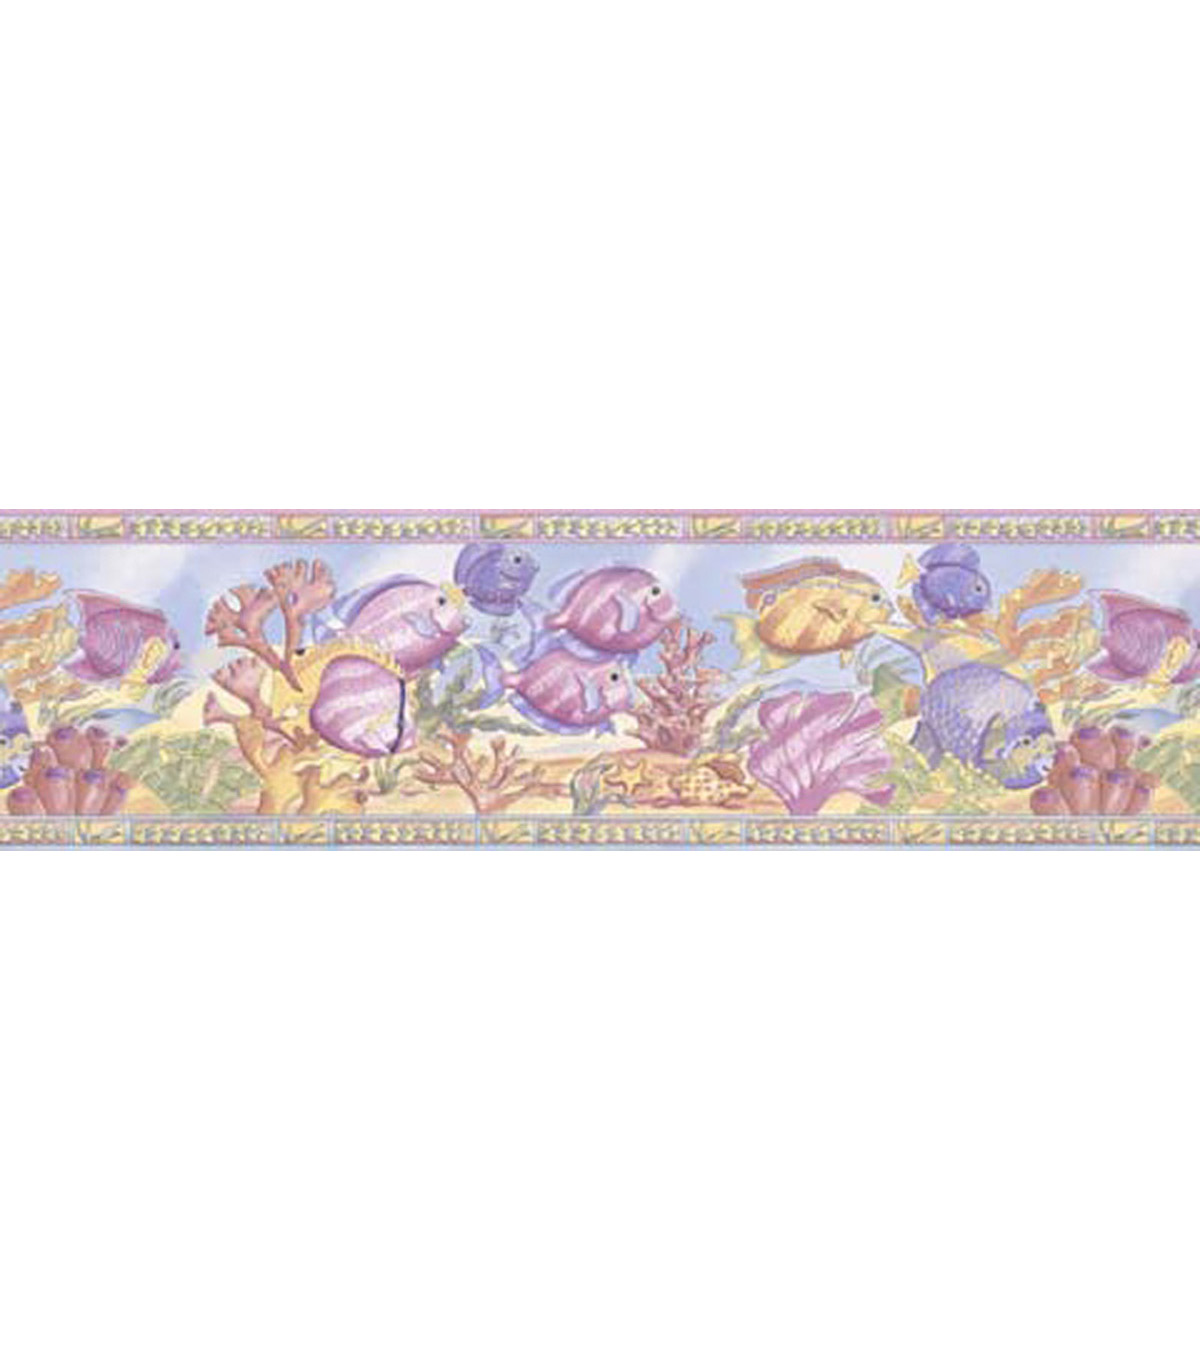 Underwater Scene Wallpaper Border, Multicolor Sample